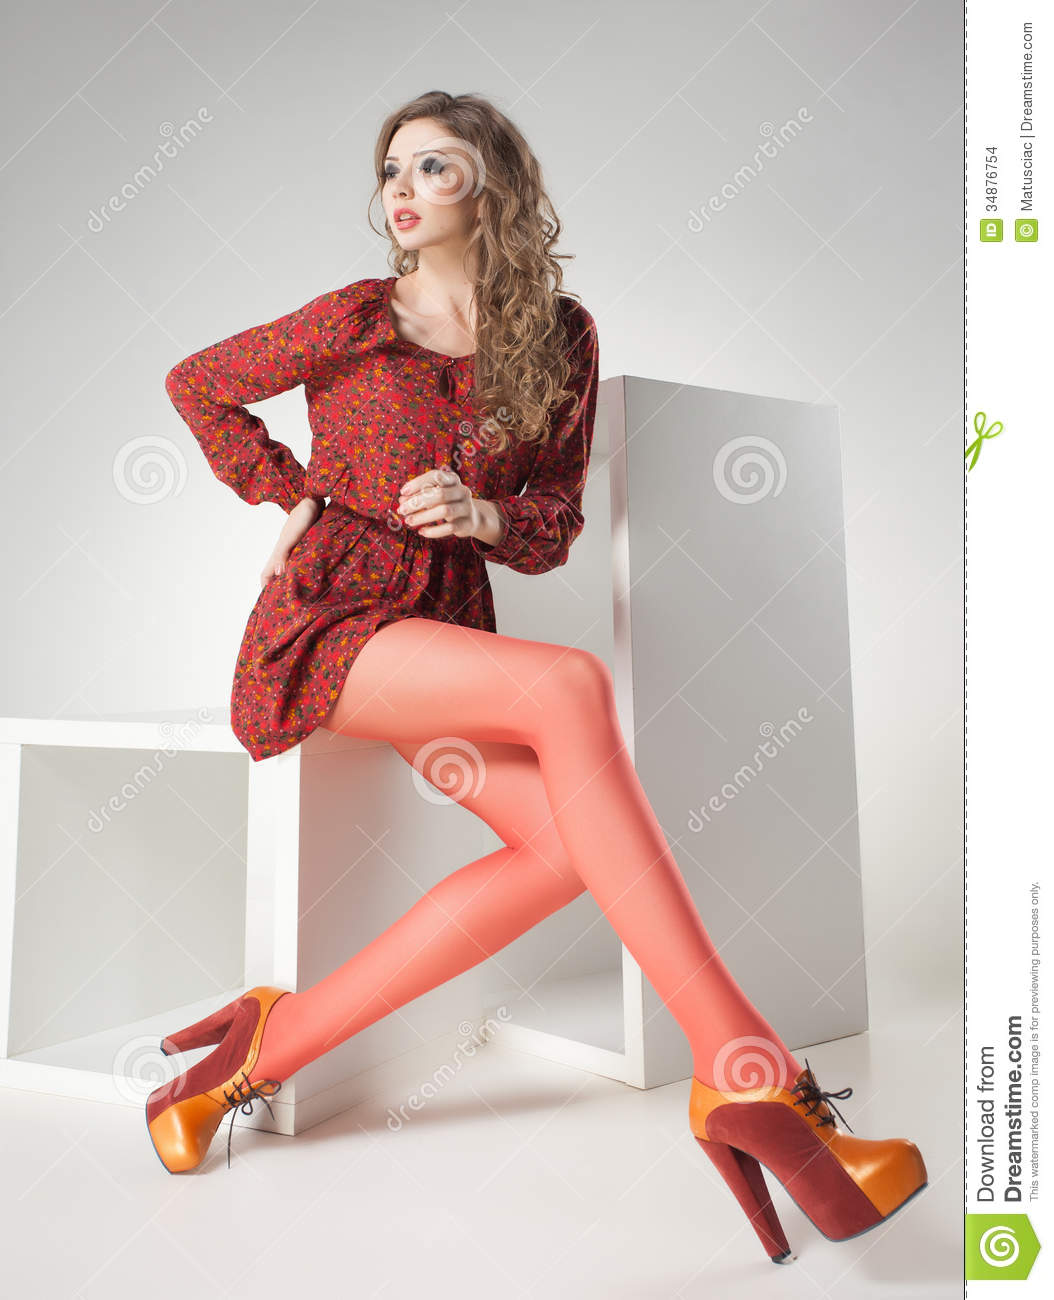 Classy And Glamorous Photo: Beautiful Woman With Long Legs Dressed Elegant Posing In